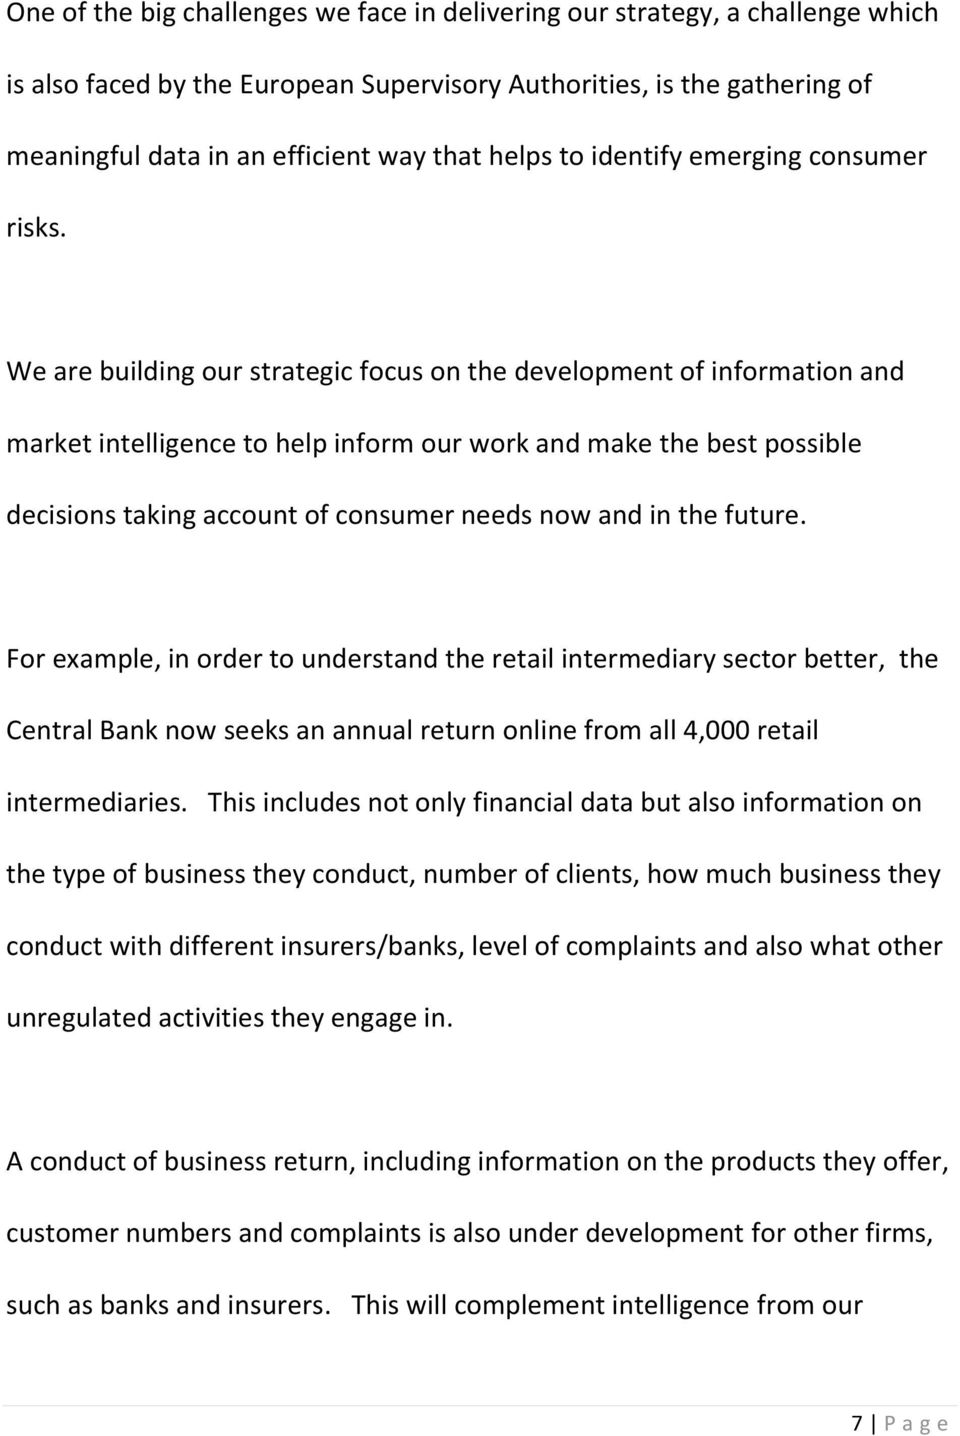 We are building our strategic focus on the development of information and market intelligence to help inform our work and make the best possible decisions taking account of consumer needs now and in